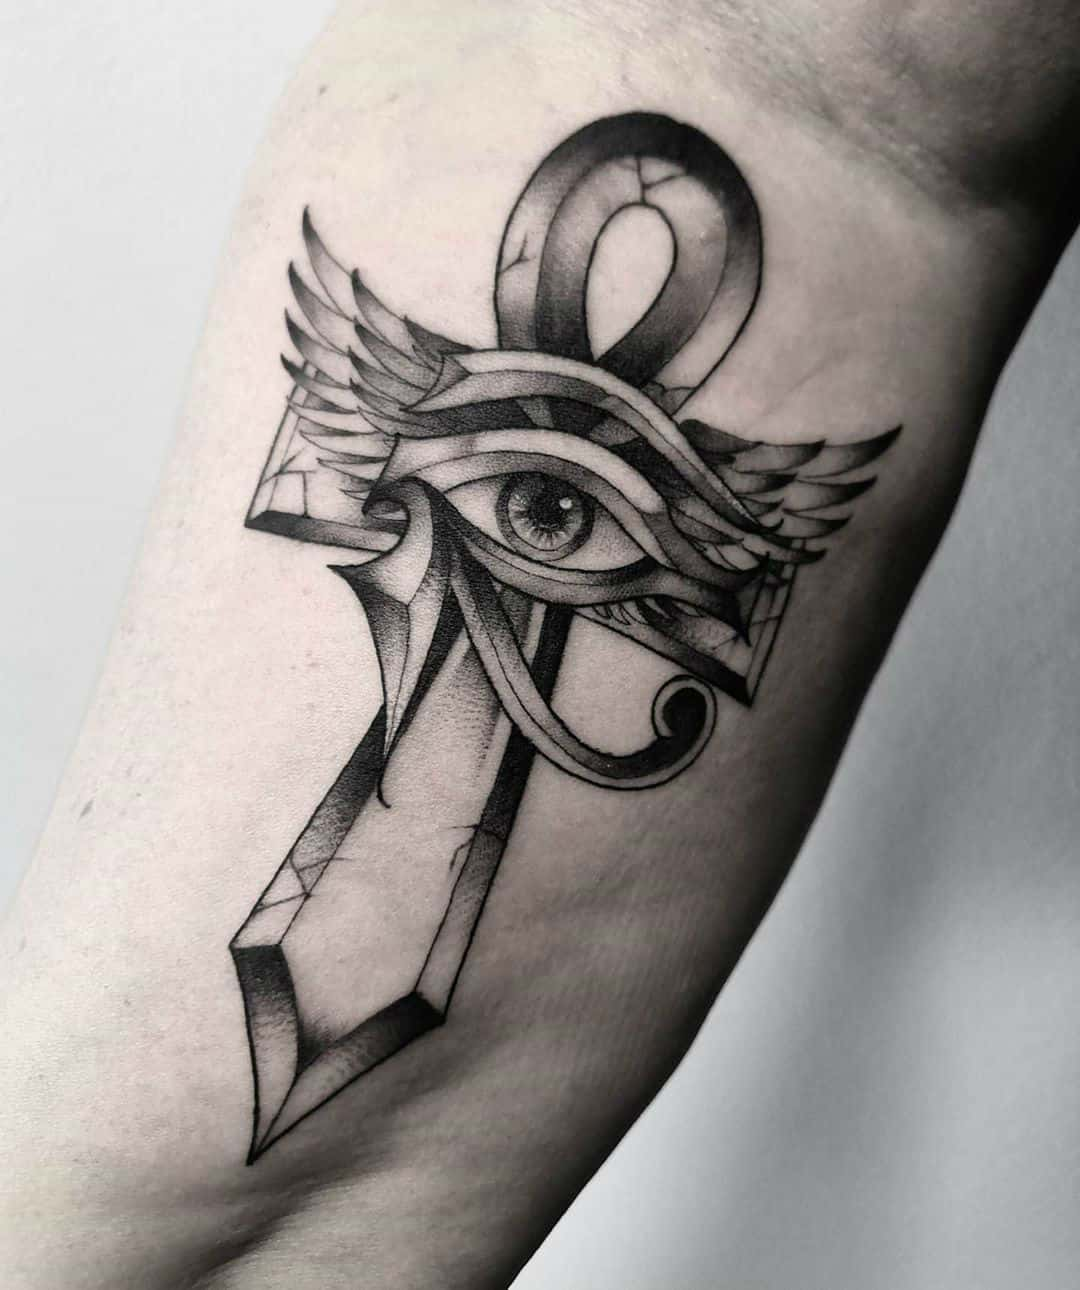 20 Powerful Ankh Tattoo Ideas – Analogy Behind the Ancient Symbol